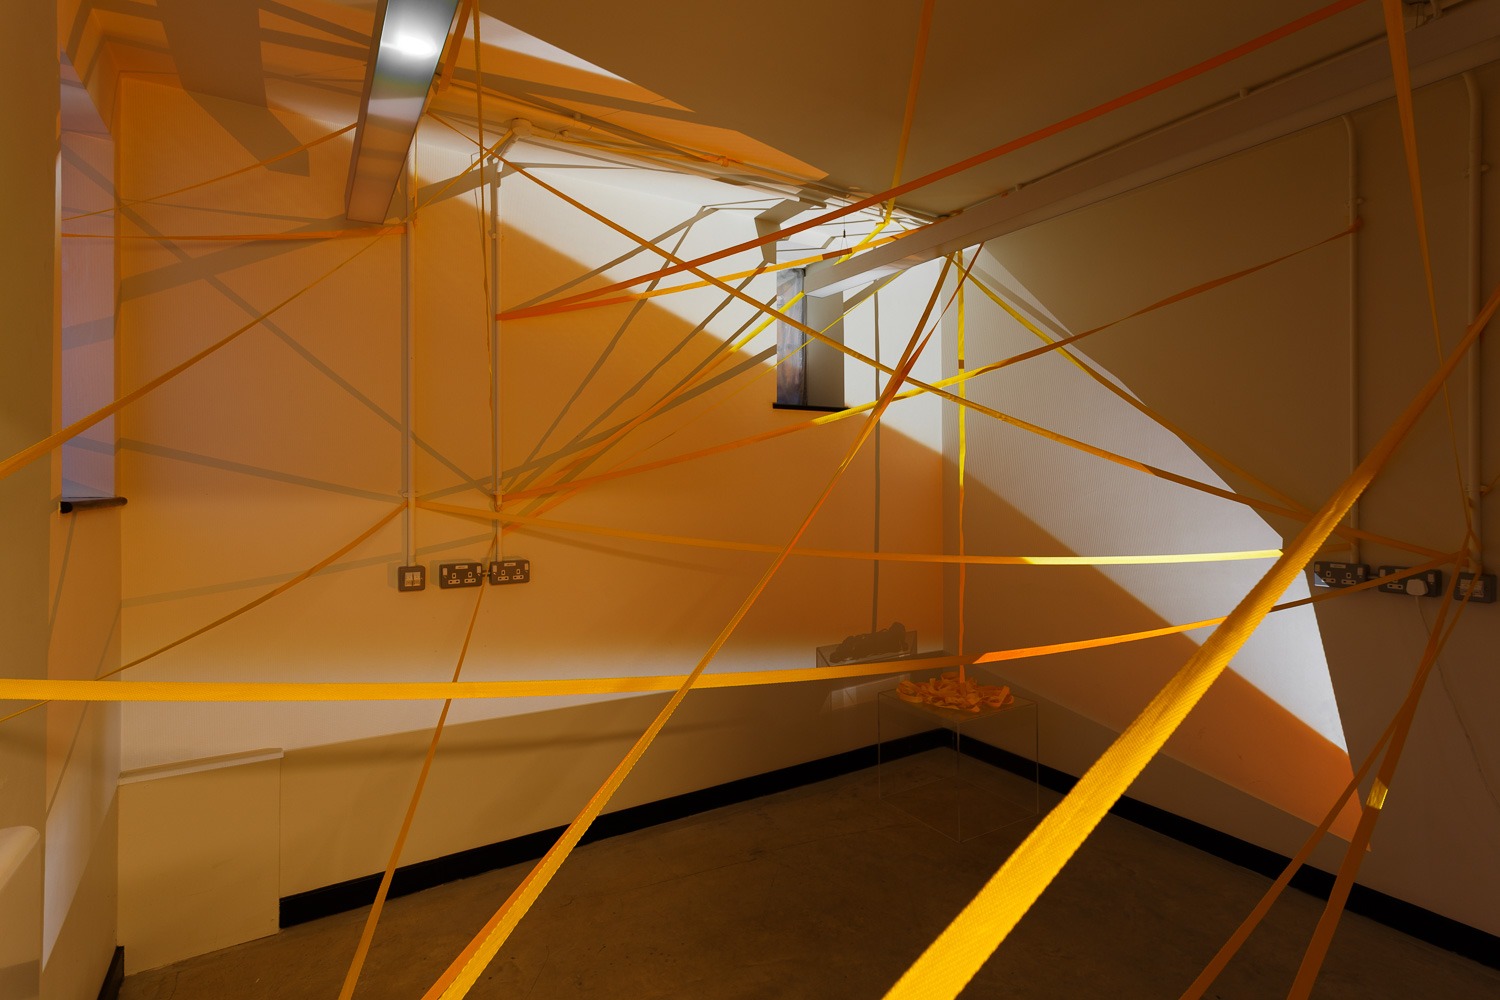 Holly Rowan Hesson,  Bend or break , 2018, webbing, found Perspex box, projection (looped series of 15 photographs), dimensions variable